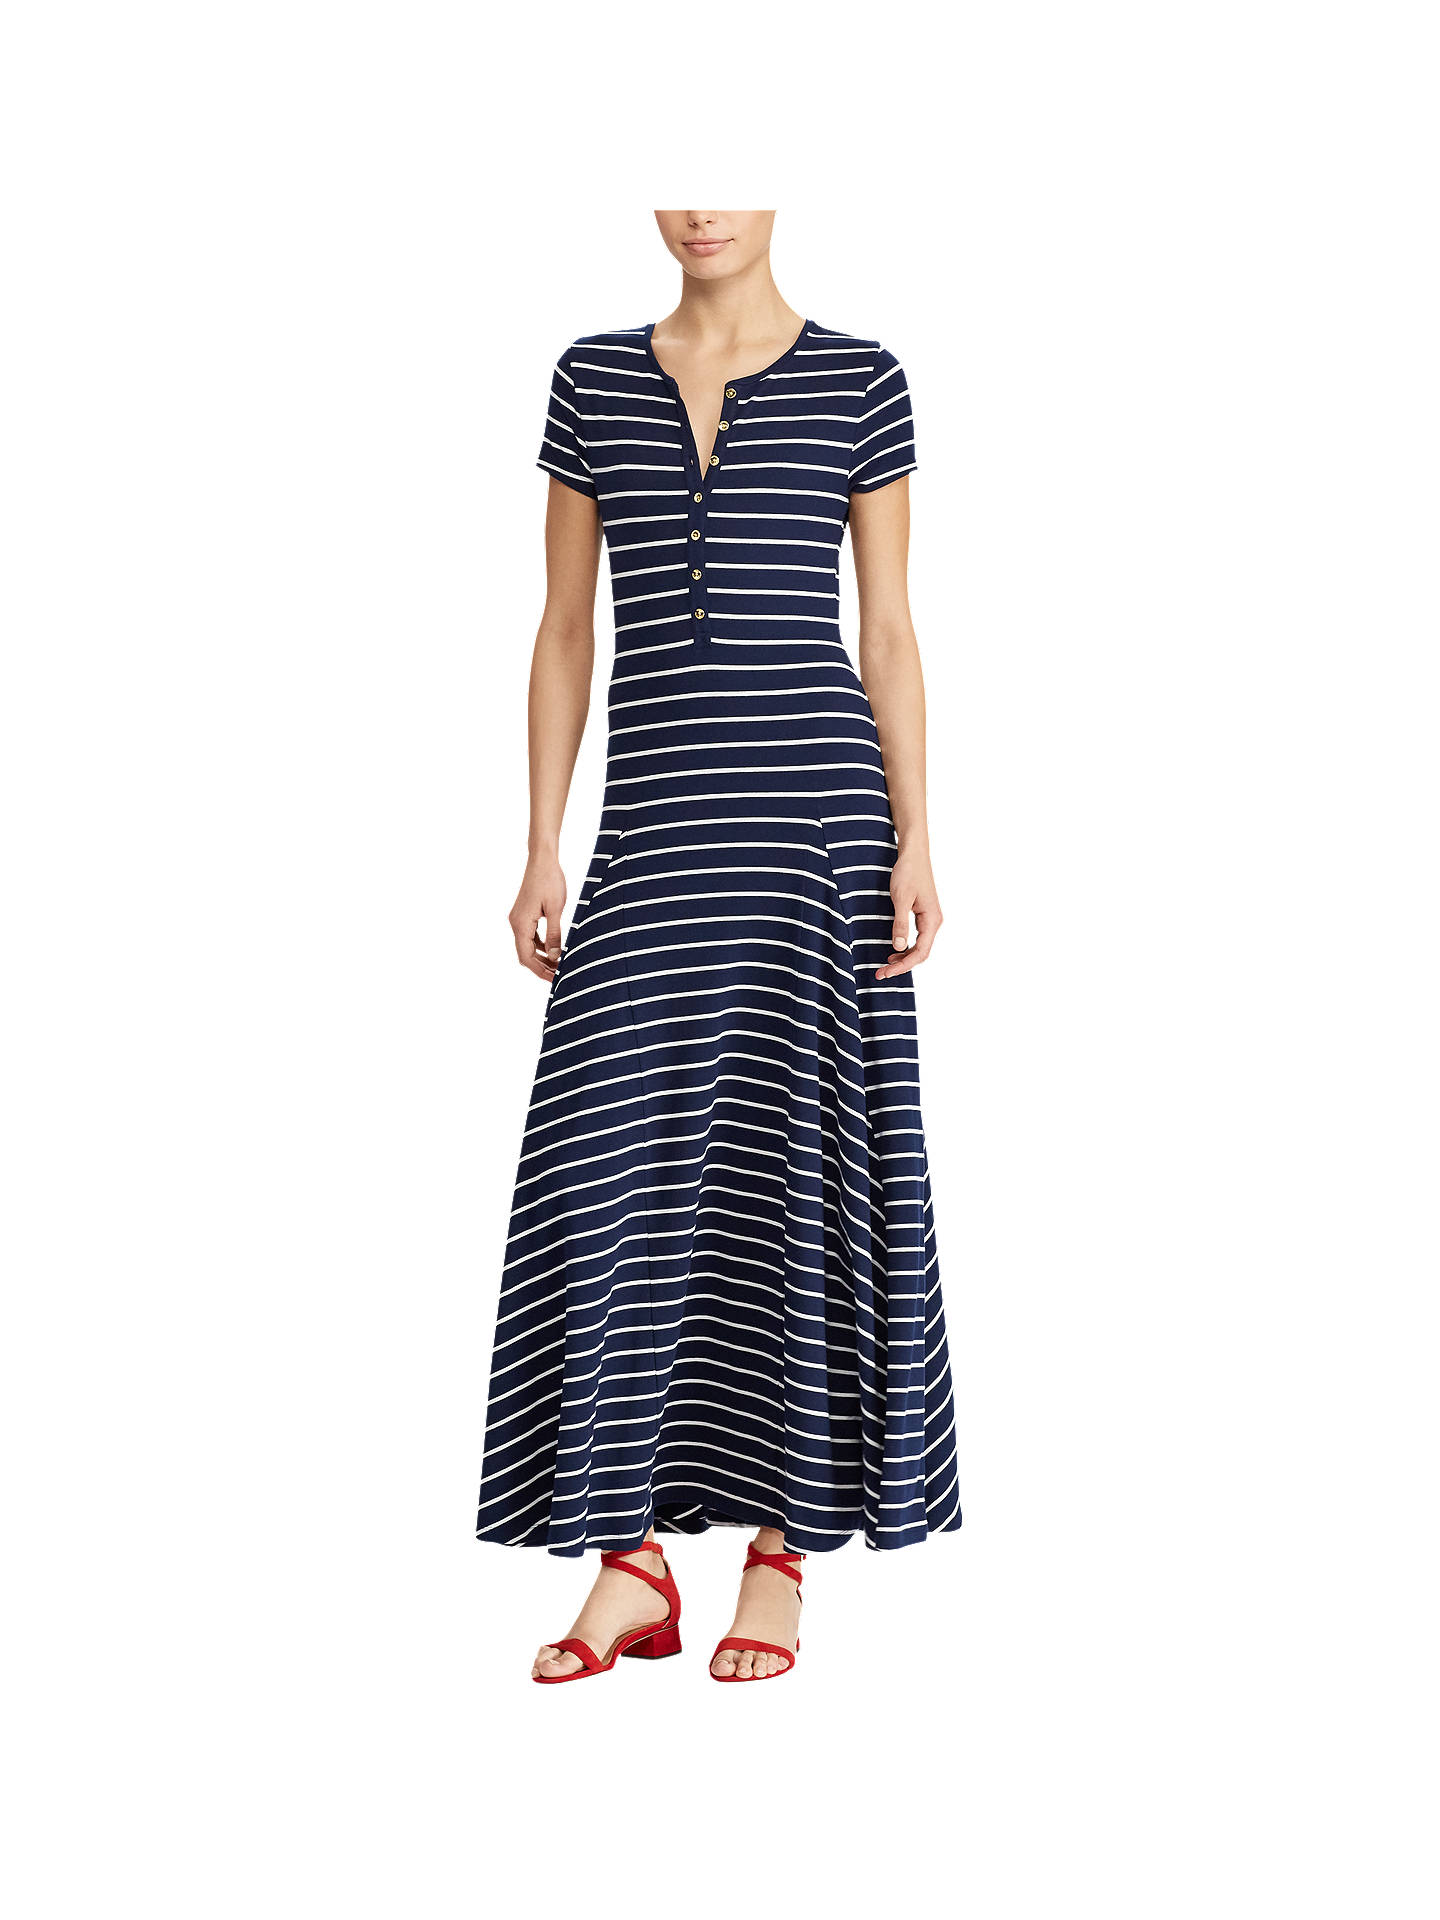 BuyLauren Ralph Lauren Wolford Casual Striped Dress, Navy/White, XS Online at johnlewis.com